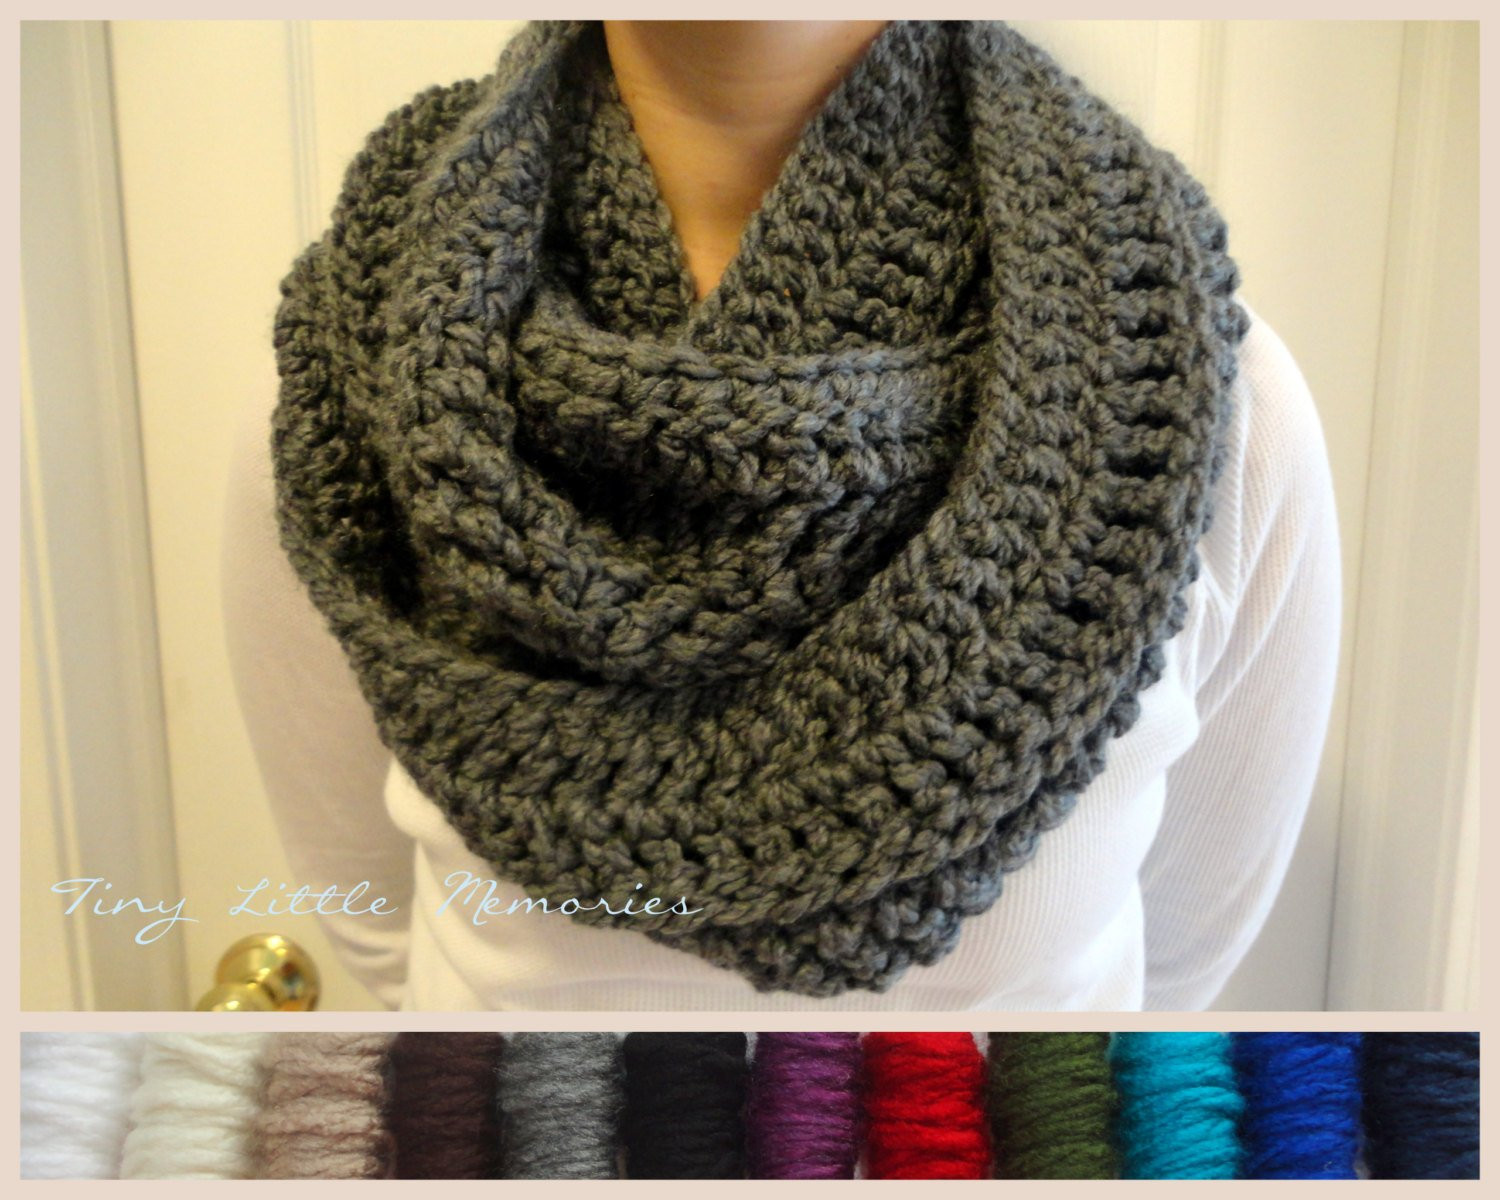 Charcoal Gray Infinity Scarf Crocheted Winter Scarf Circle